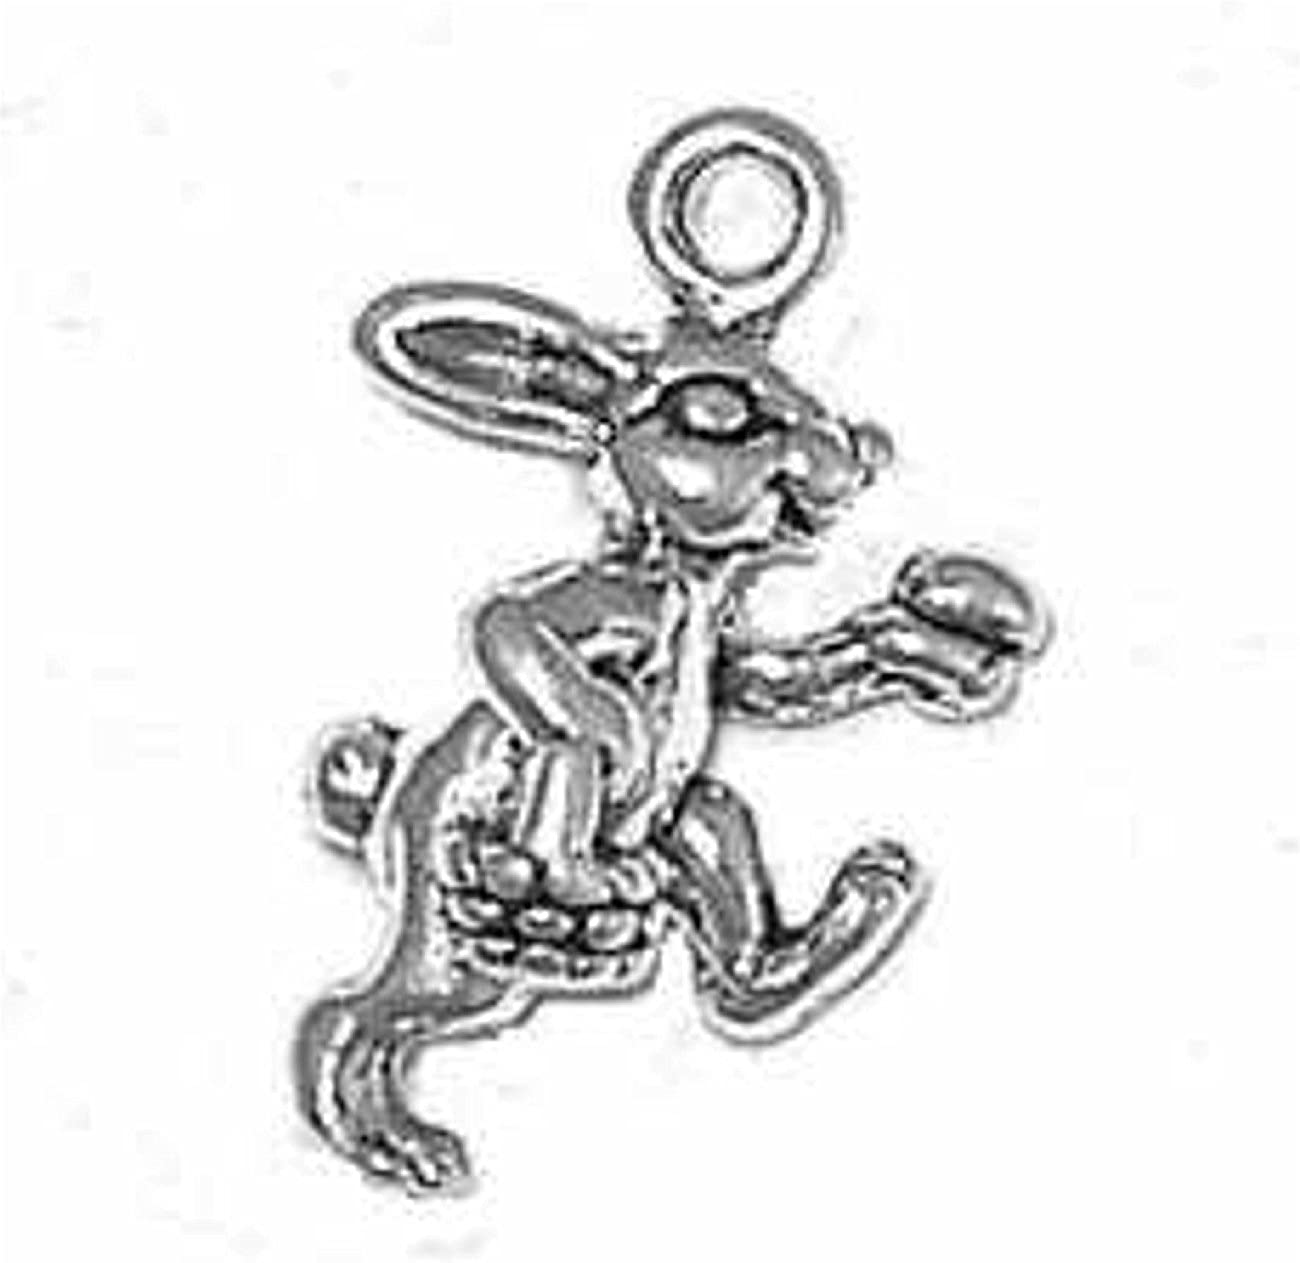 Sterling Silver Charm Bracelet Attached 3D Bunny Walking Max 46% OFF Easter mart